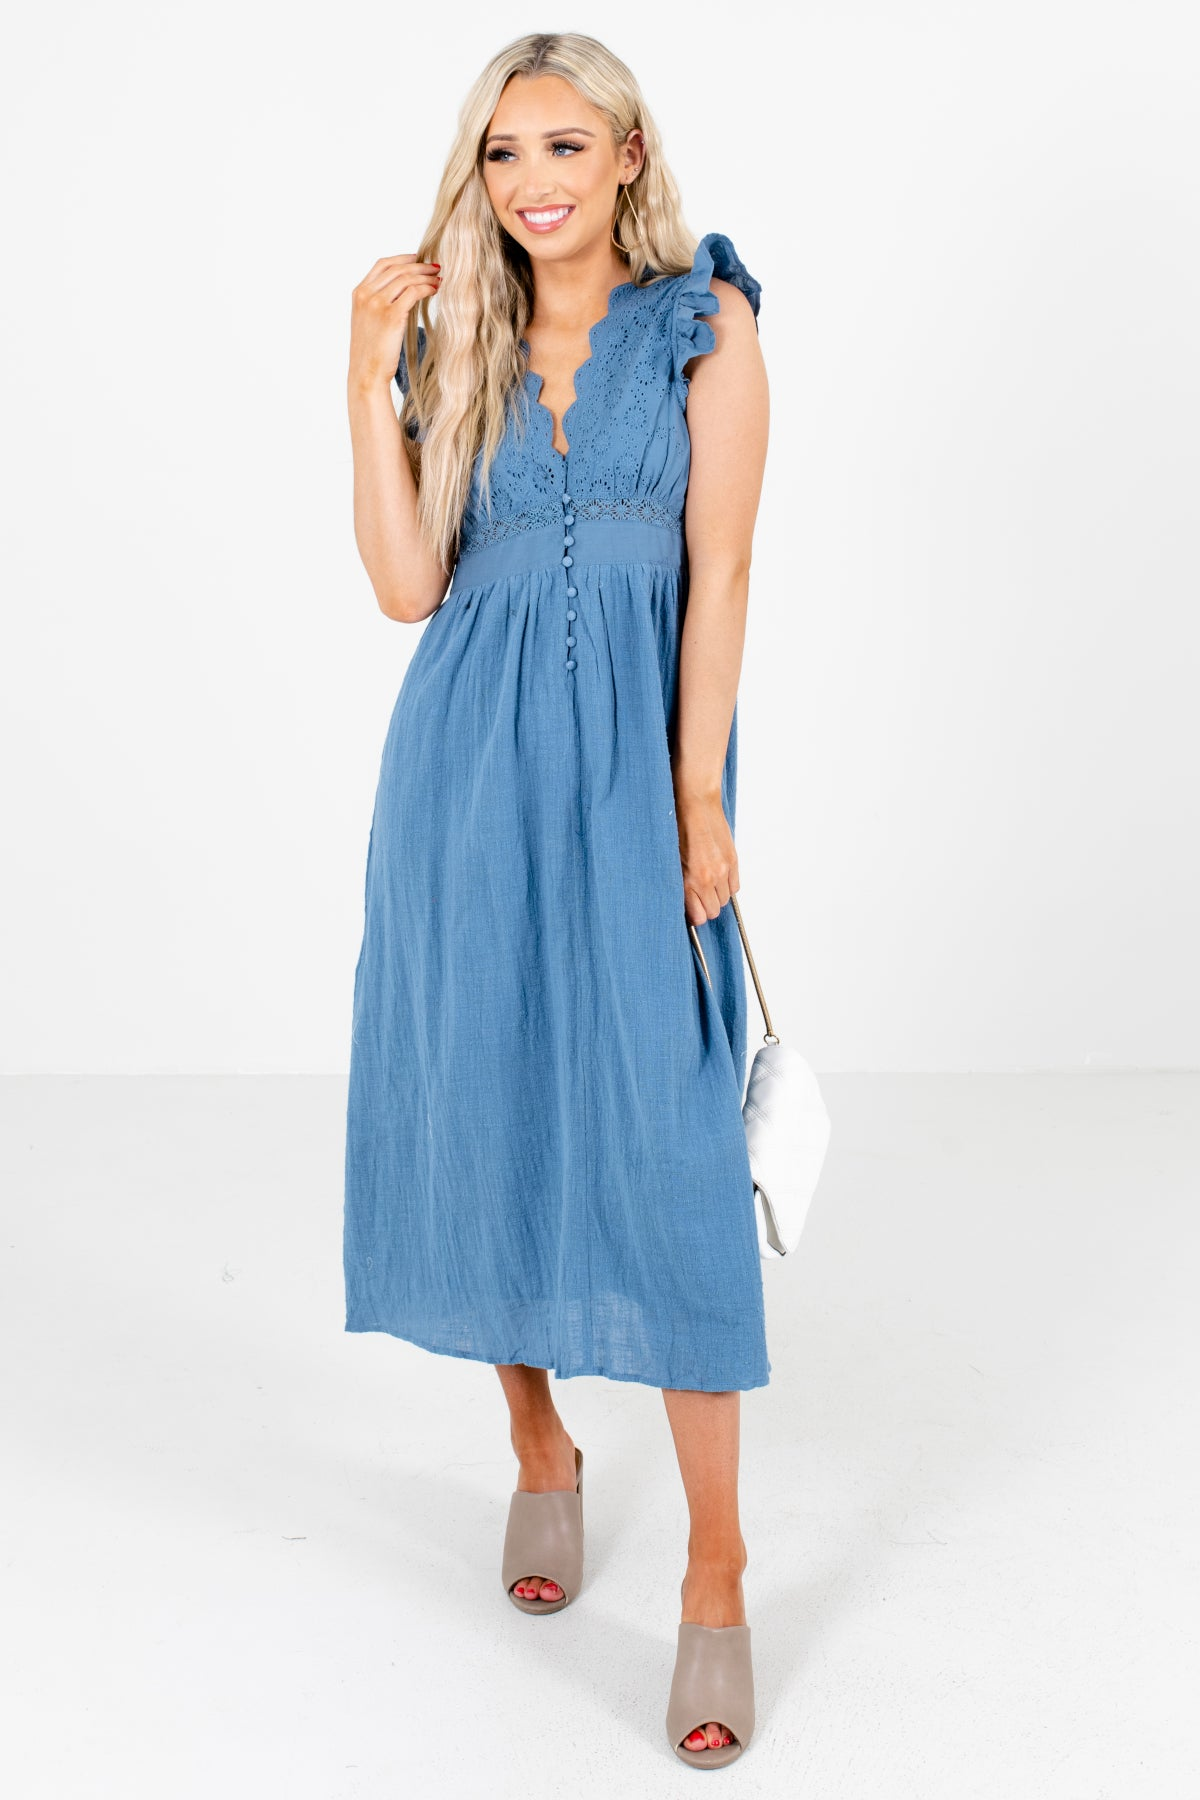 Blue Eyelet Detailed Bodice Boutique Midi Dresses for Women